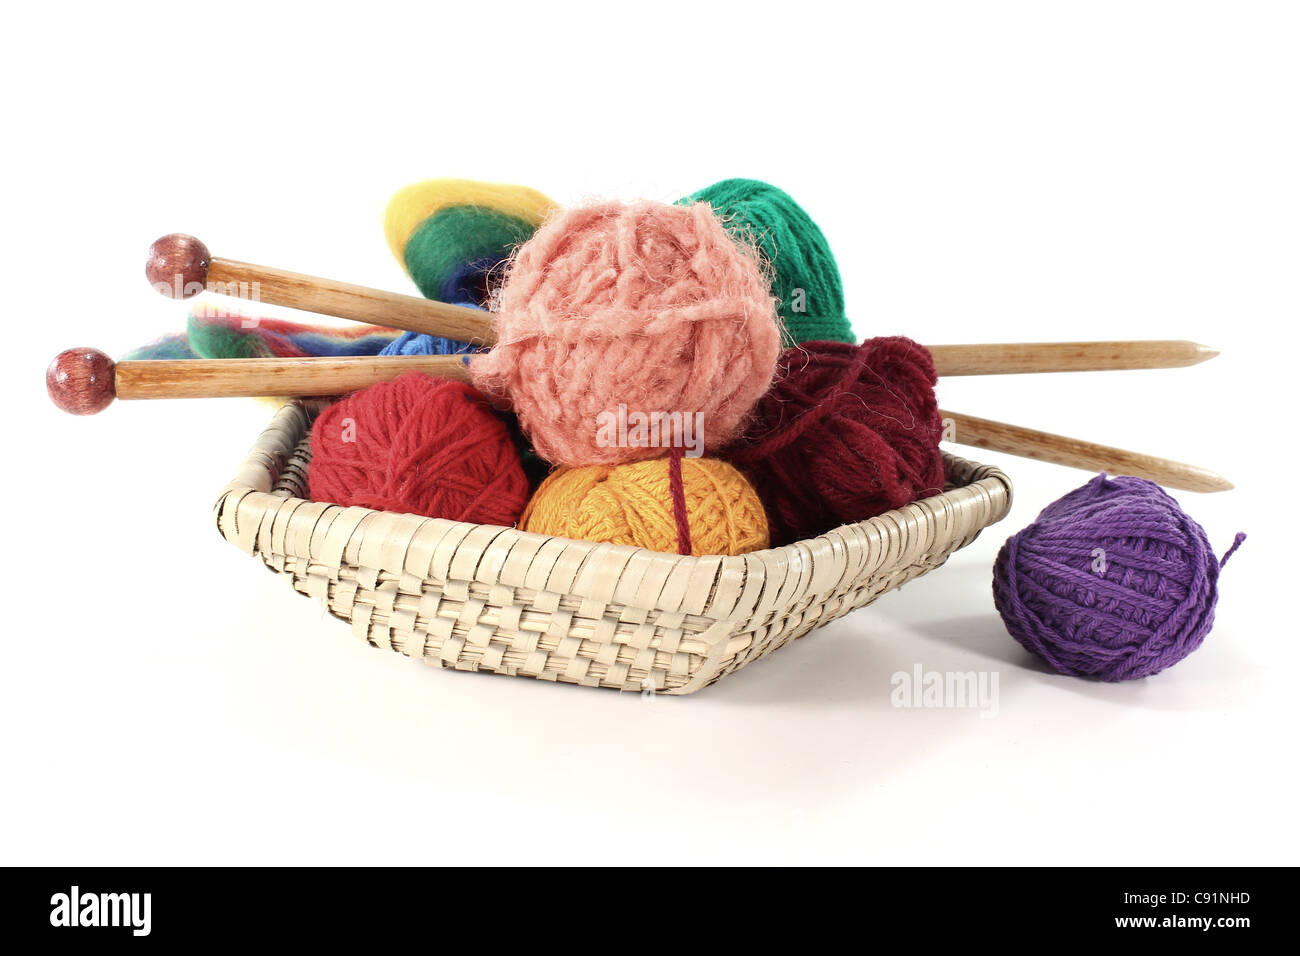 colorful ball of wool with knitting needles in a basket - Stock Image